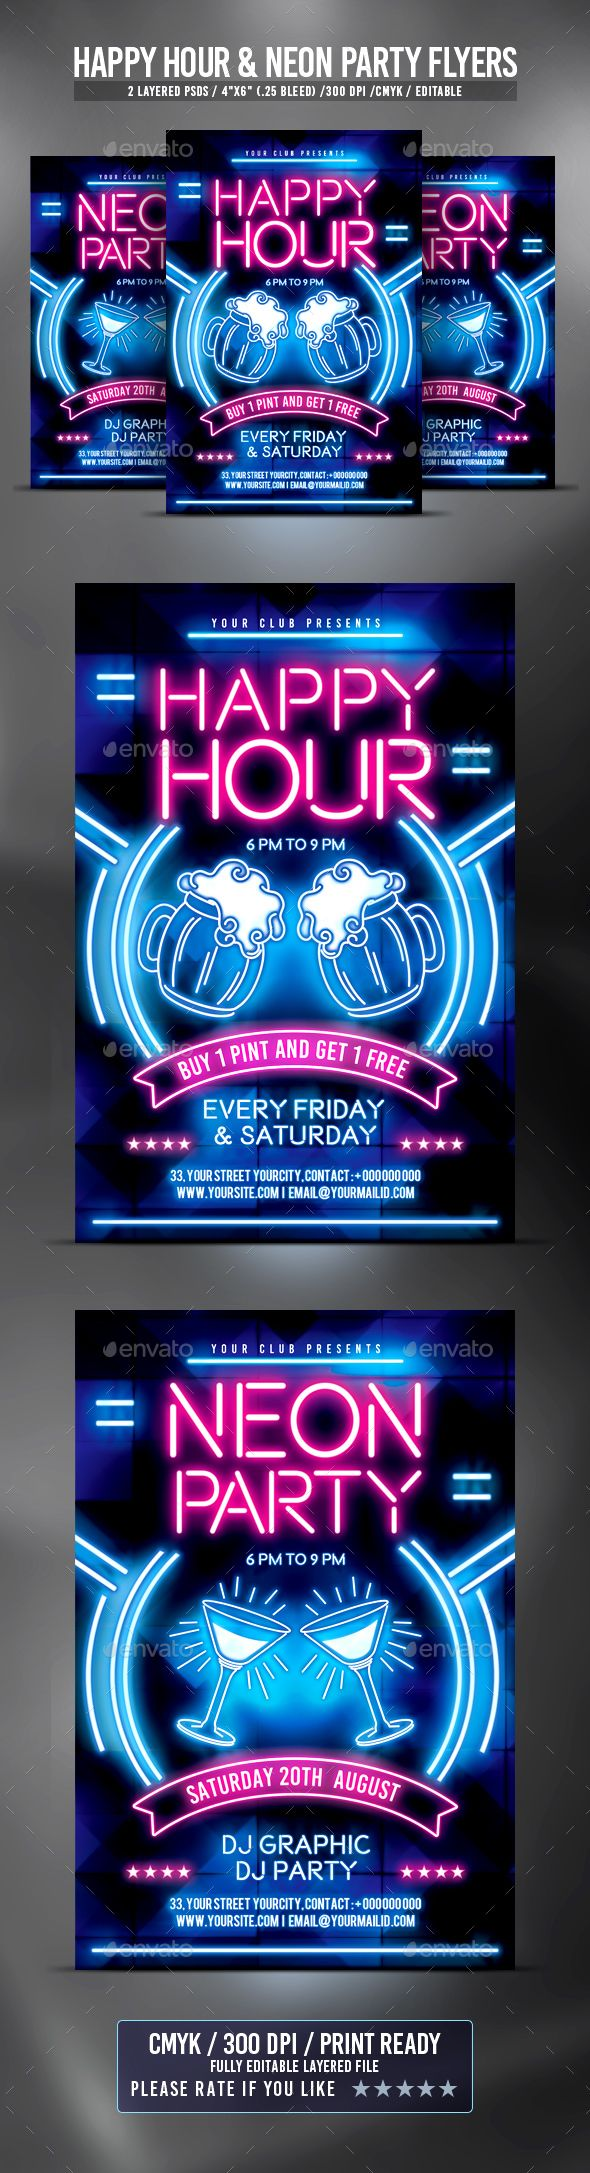 Happy Hour and Neon Party Flyers — PSD Template • Only available here! →…